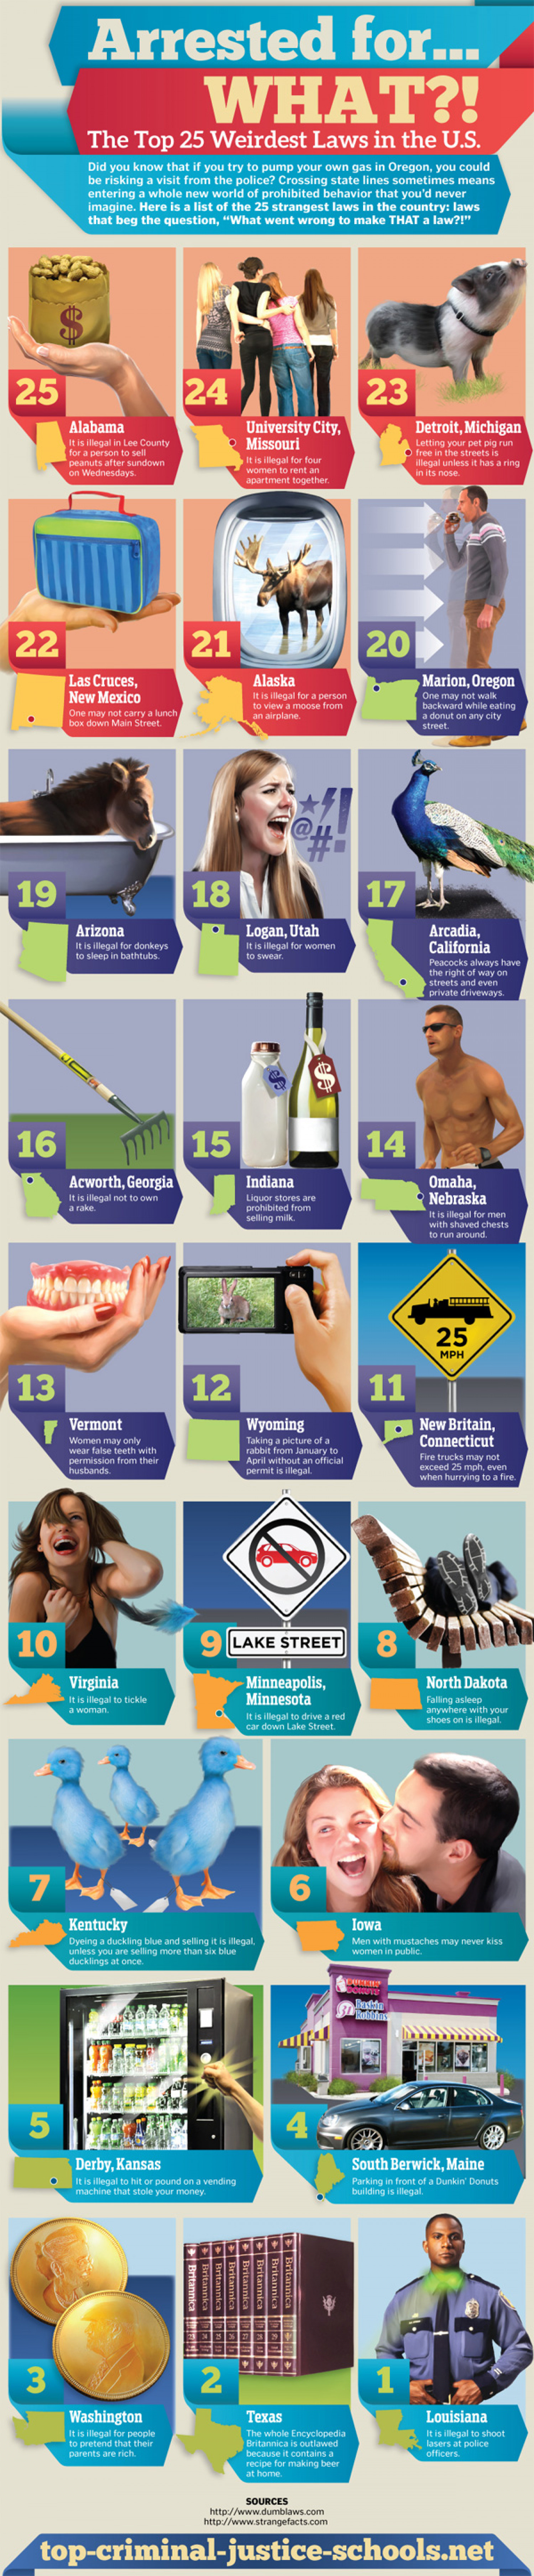 Arrested for What? The Top 25 Weirdest Laws in the U.S. Infographic